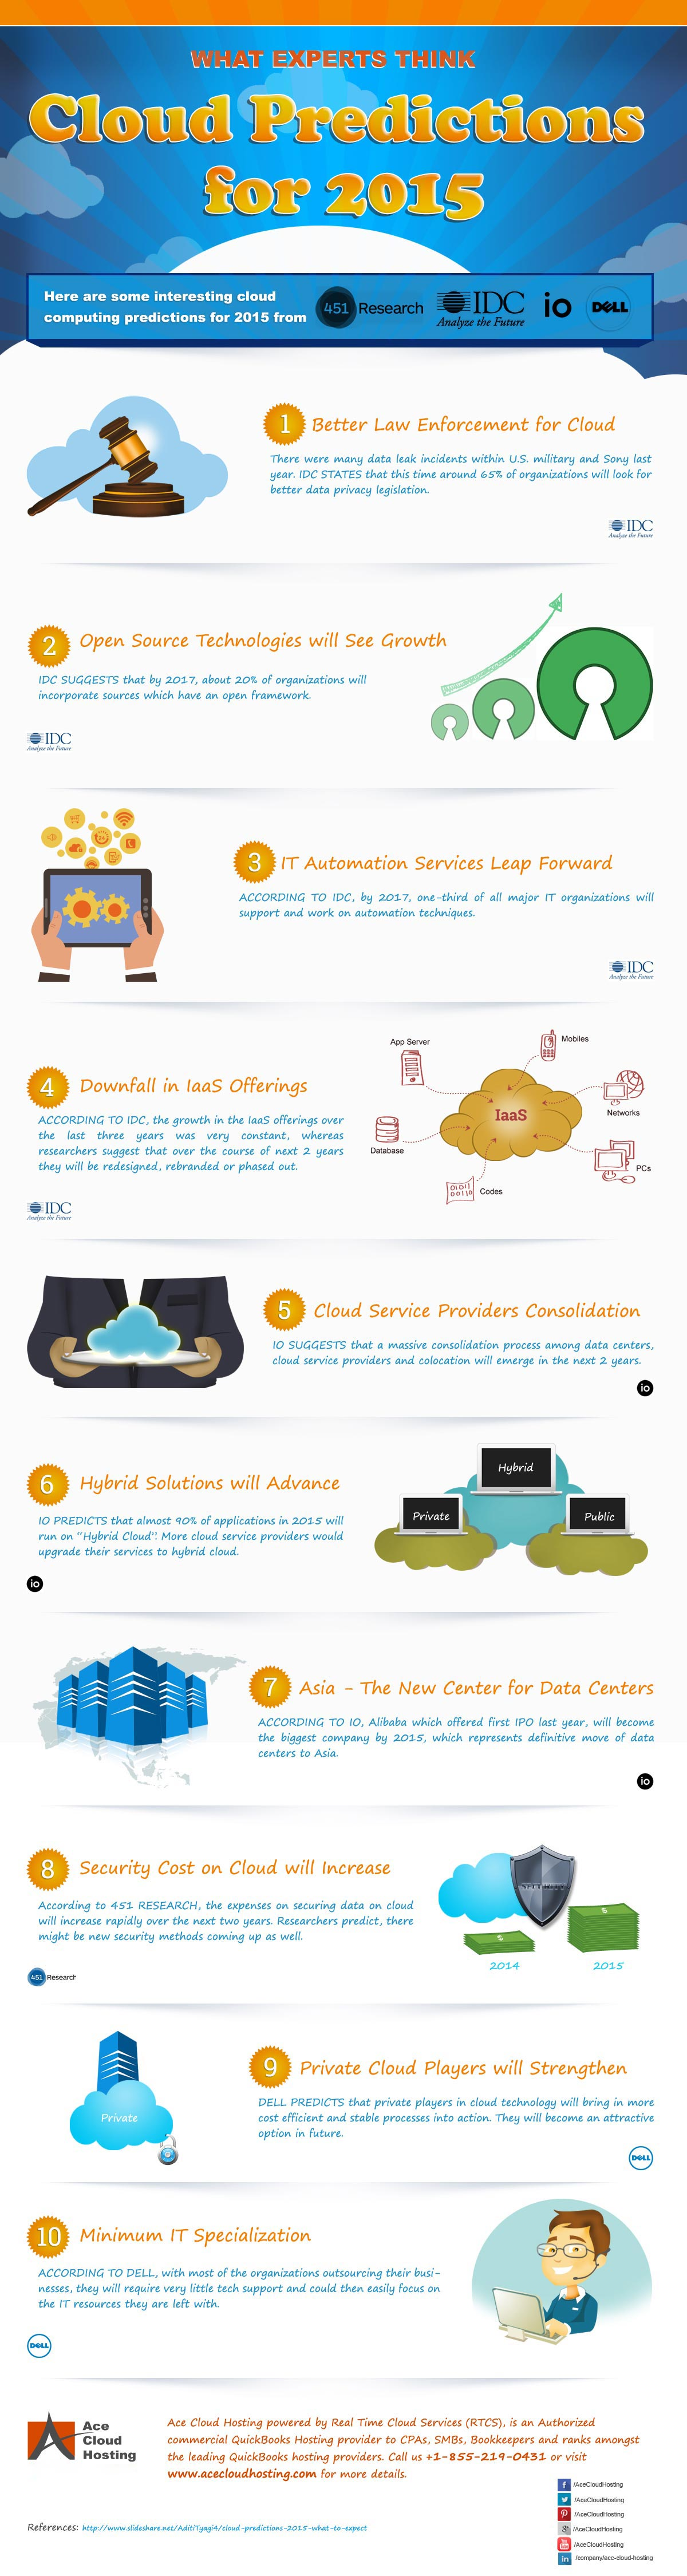 Cloud Predictions for 2015 Infographic